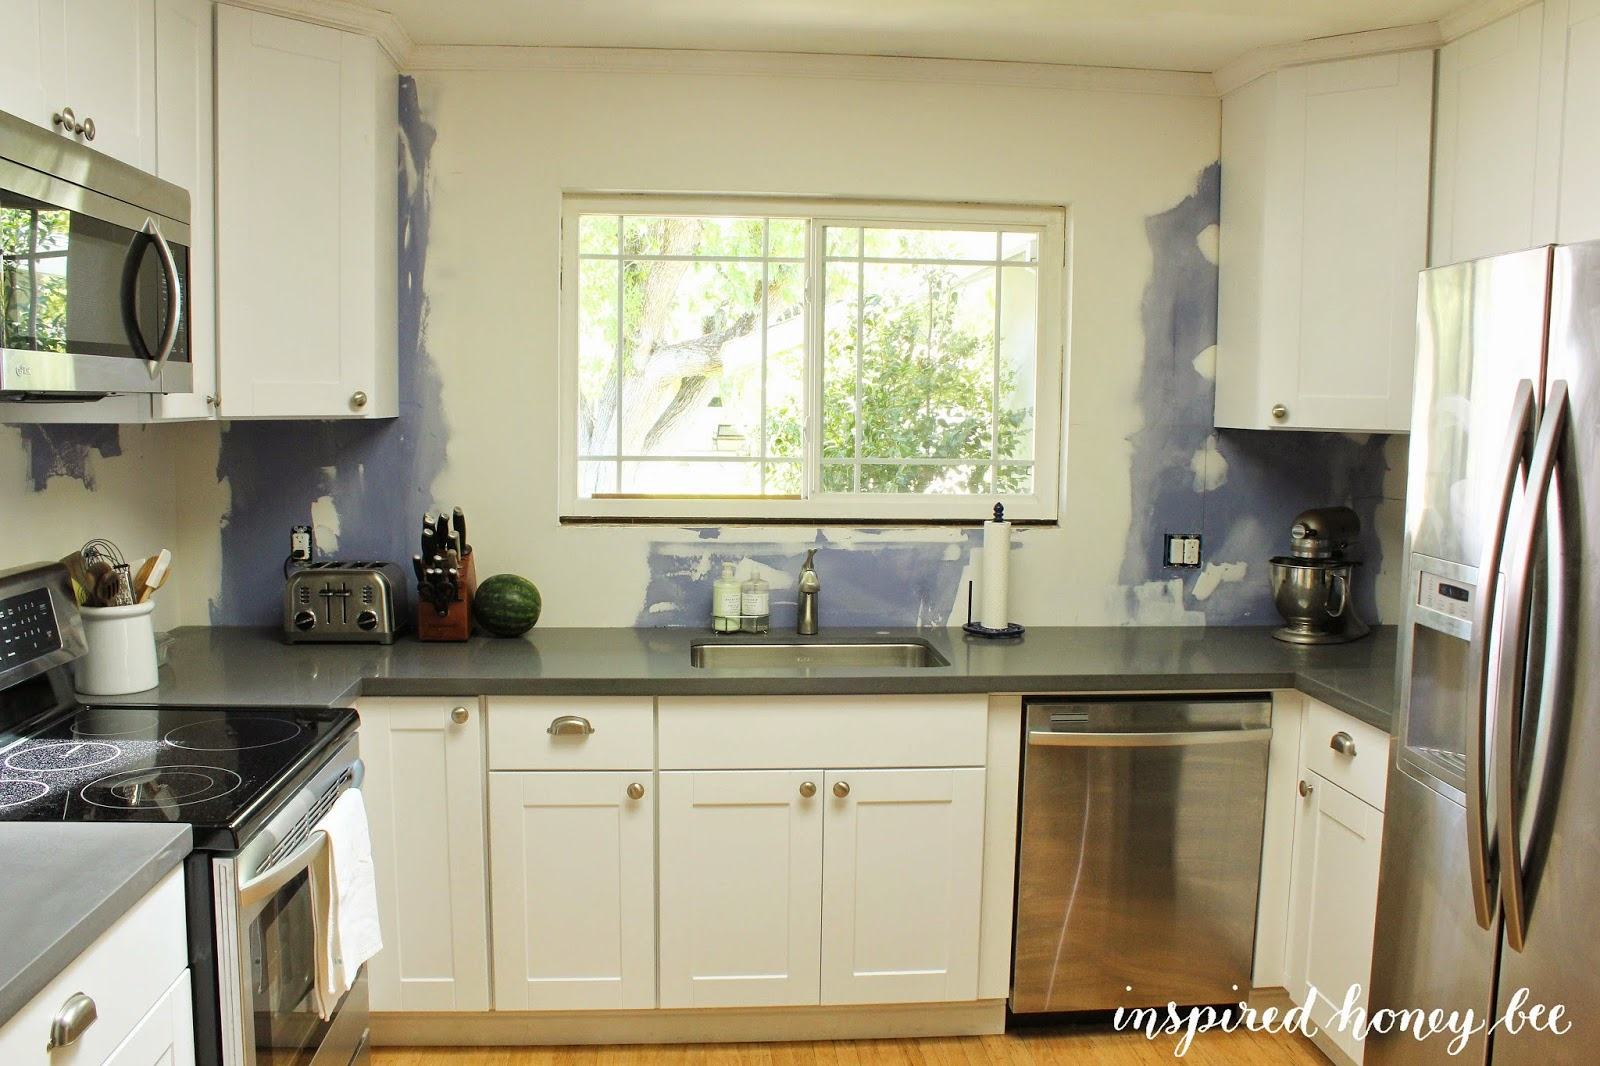 Kitchen Expo On Kitchen Inspired Honey Bee Home Kitchen Renovation Phase 4